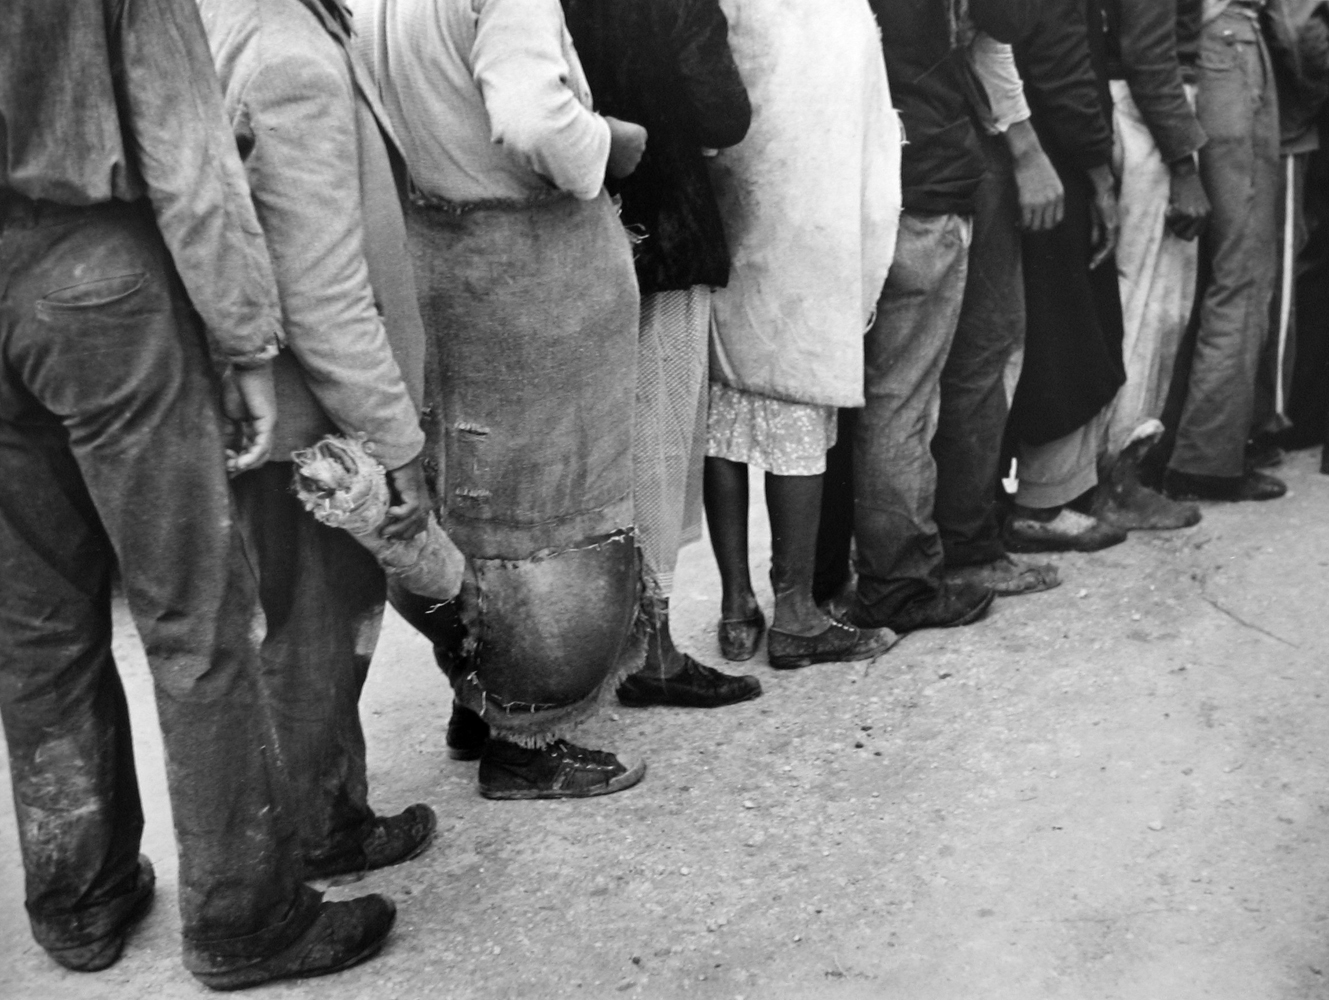 Marion Post Wolcott, Migrant Workers Waiting for Pay, FL, 1939 gelatin silver print, 11 x 14 inches